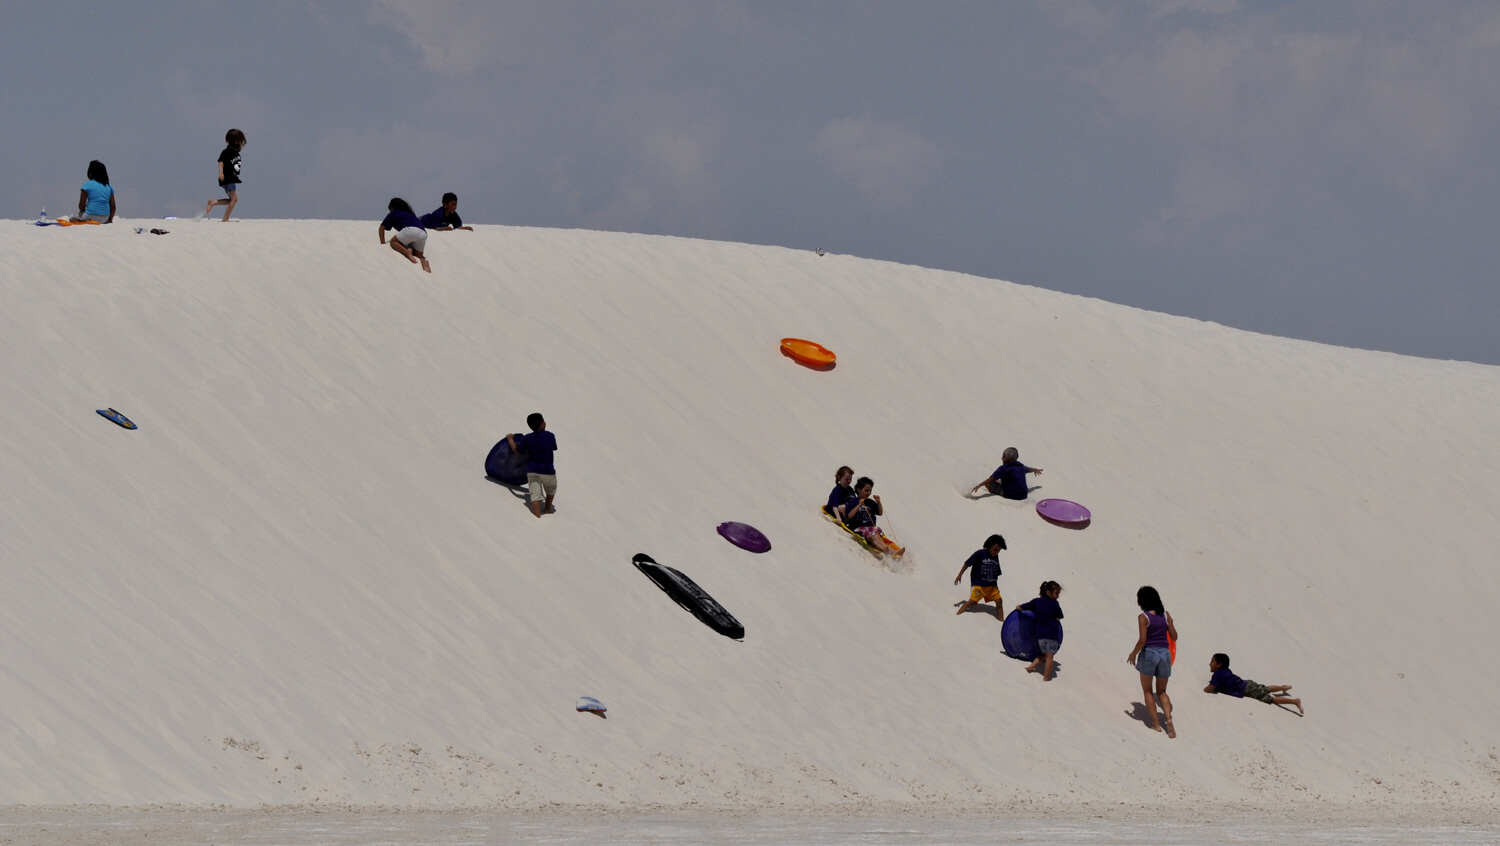 Sledding at White Sands National Monument - Photo by ap0013